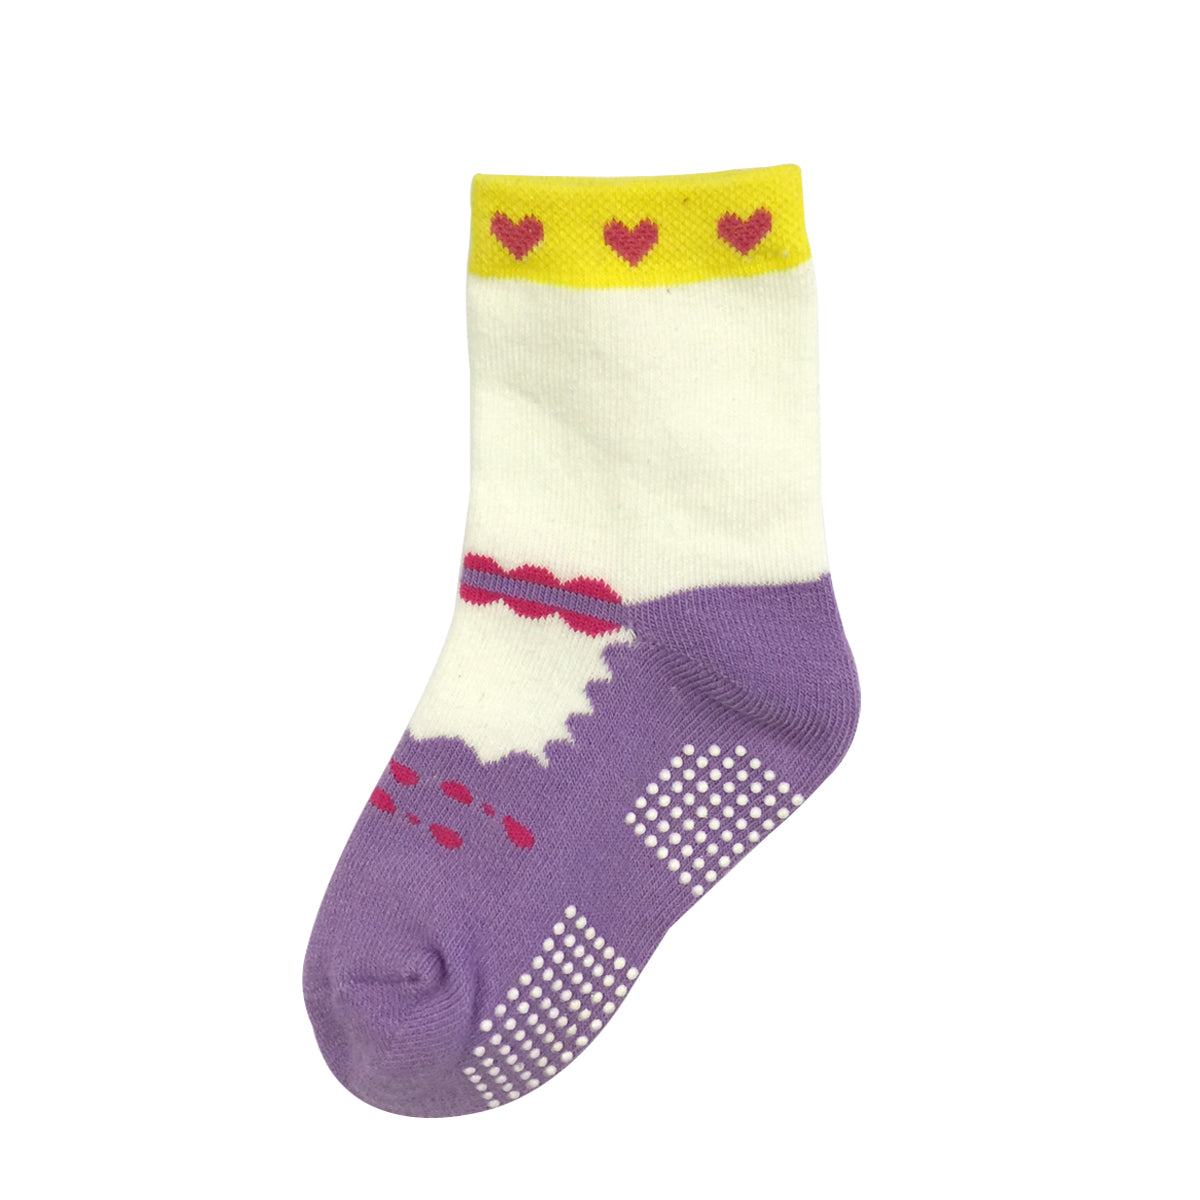 Wrapables Precious Mary Jane Non-Skid Socks (Set of 6), SET1